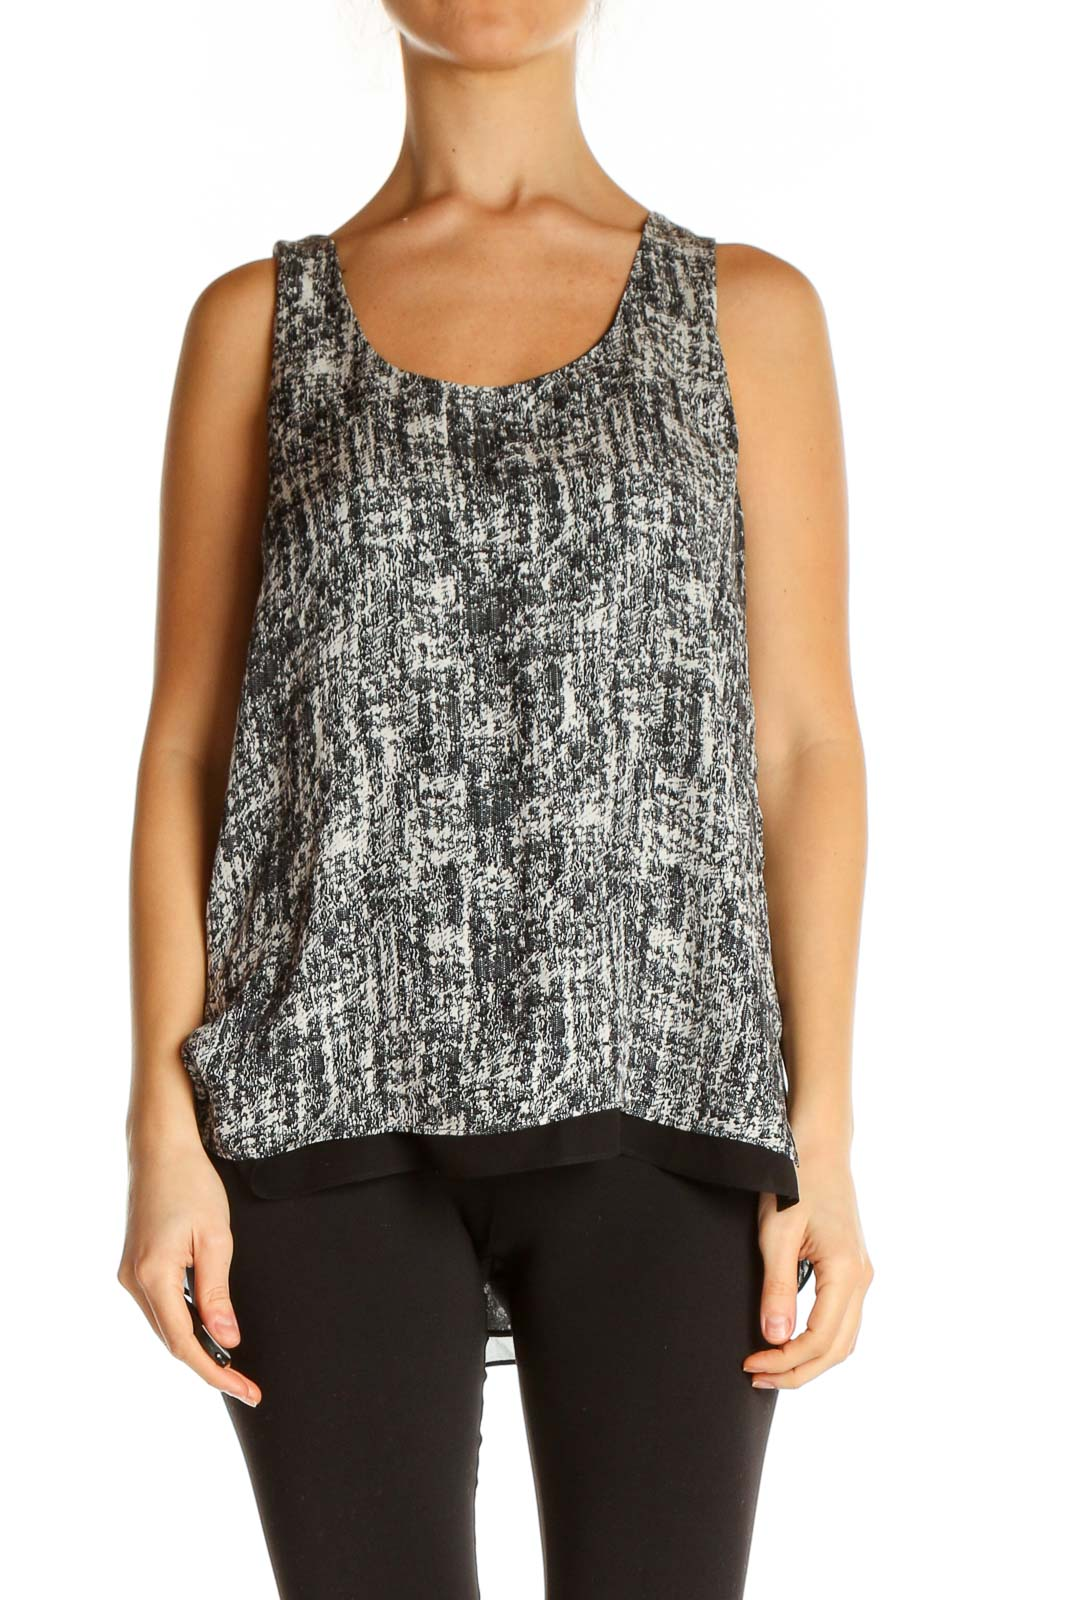 Gray Printed Chic Tank Top Front